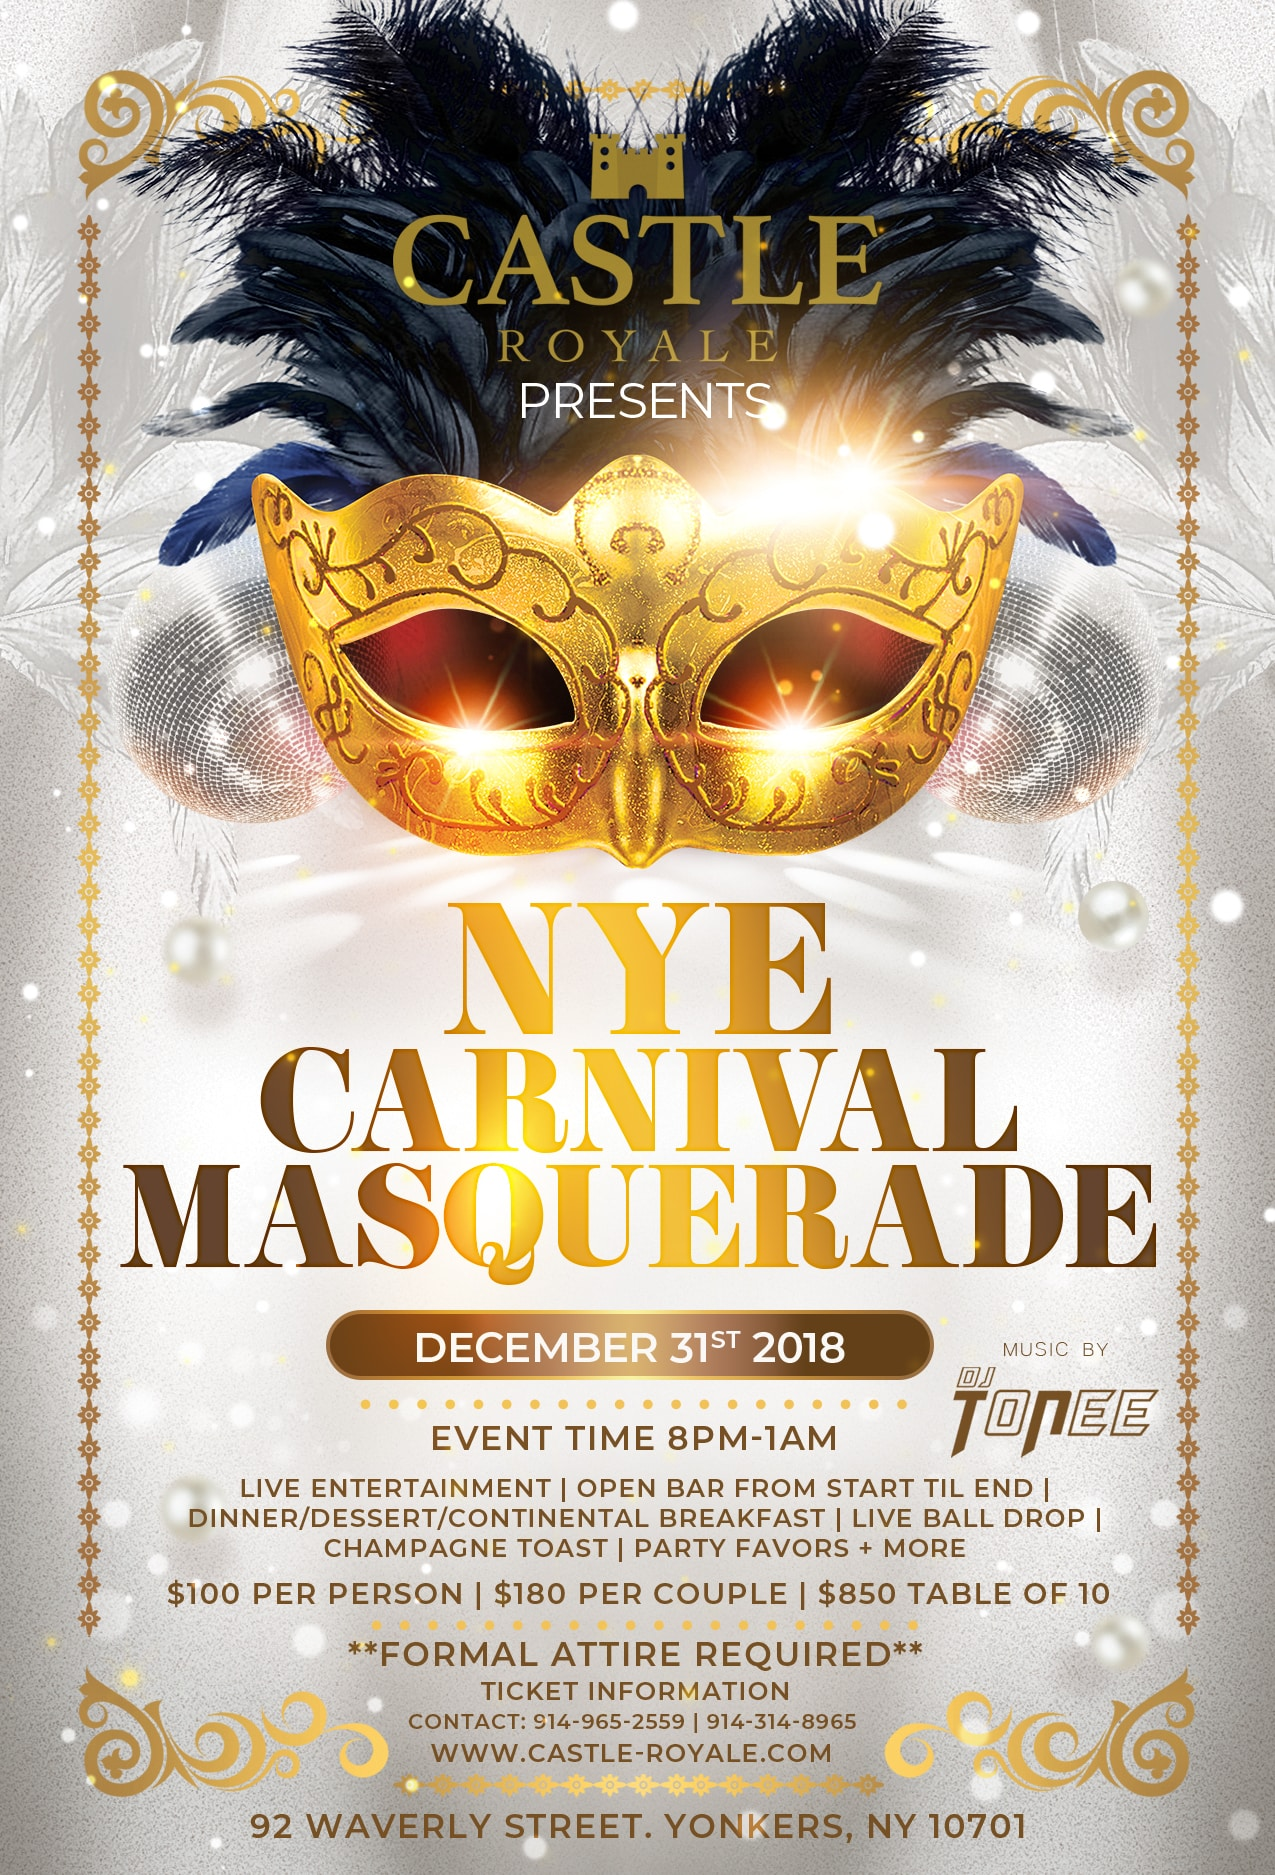 CARNIVAL MASQUERADE AT CASTLE ROYALE